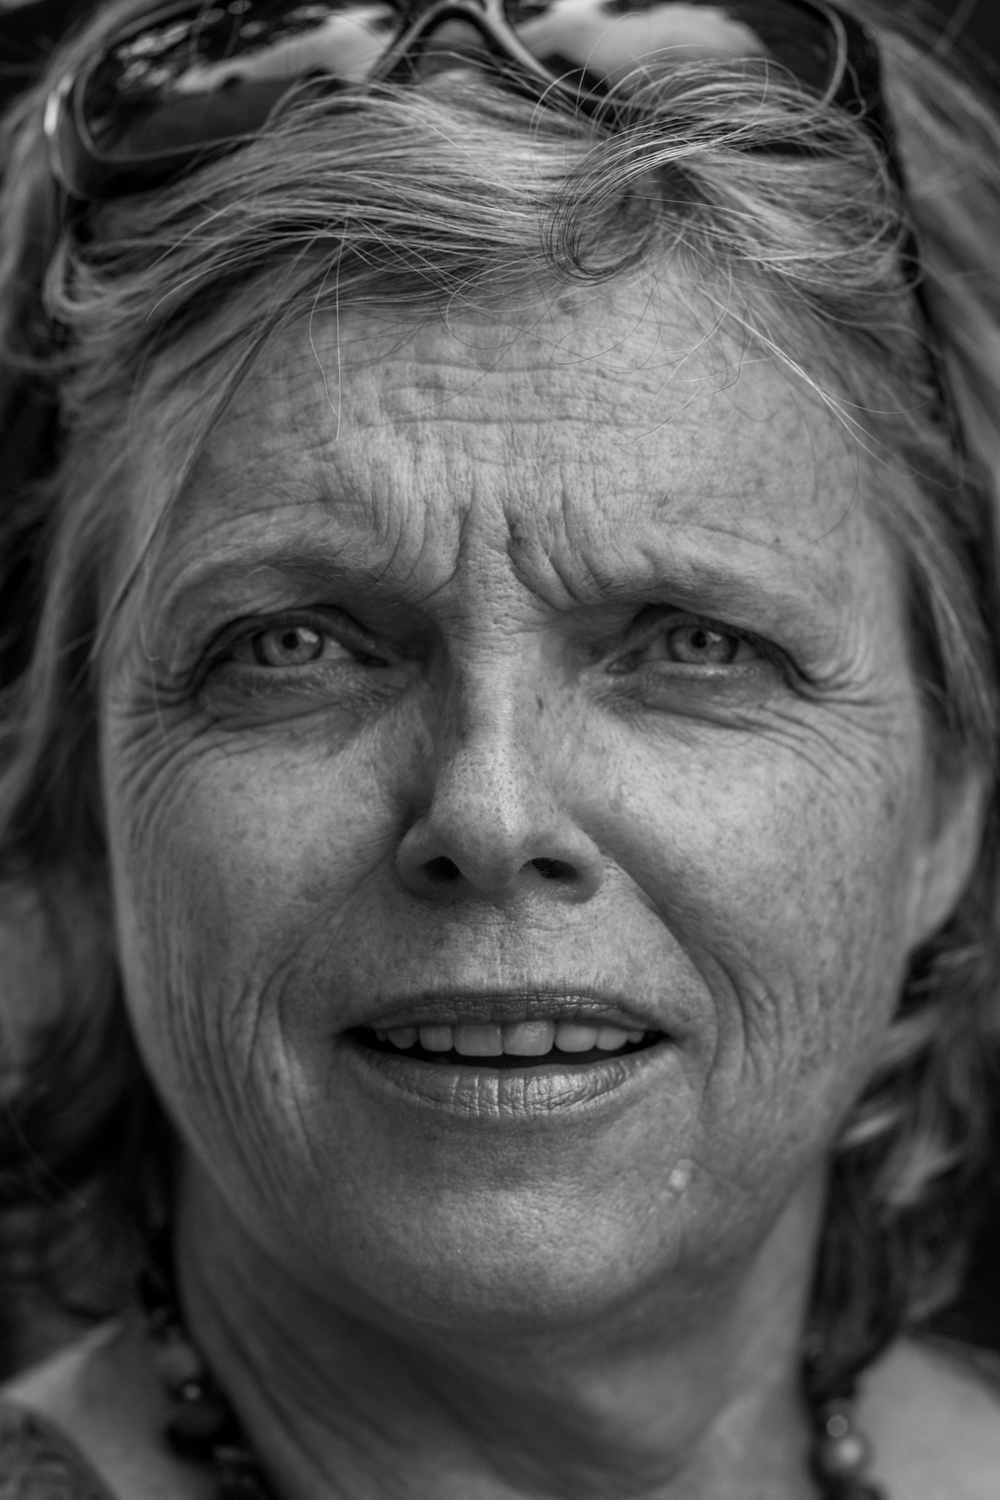 France-PamPortrait1-BW.jpg